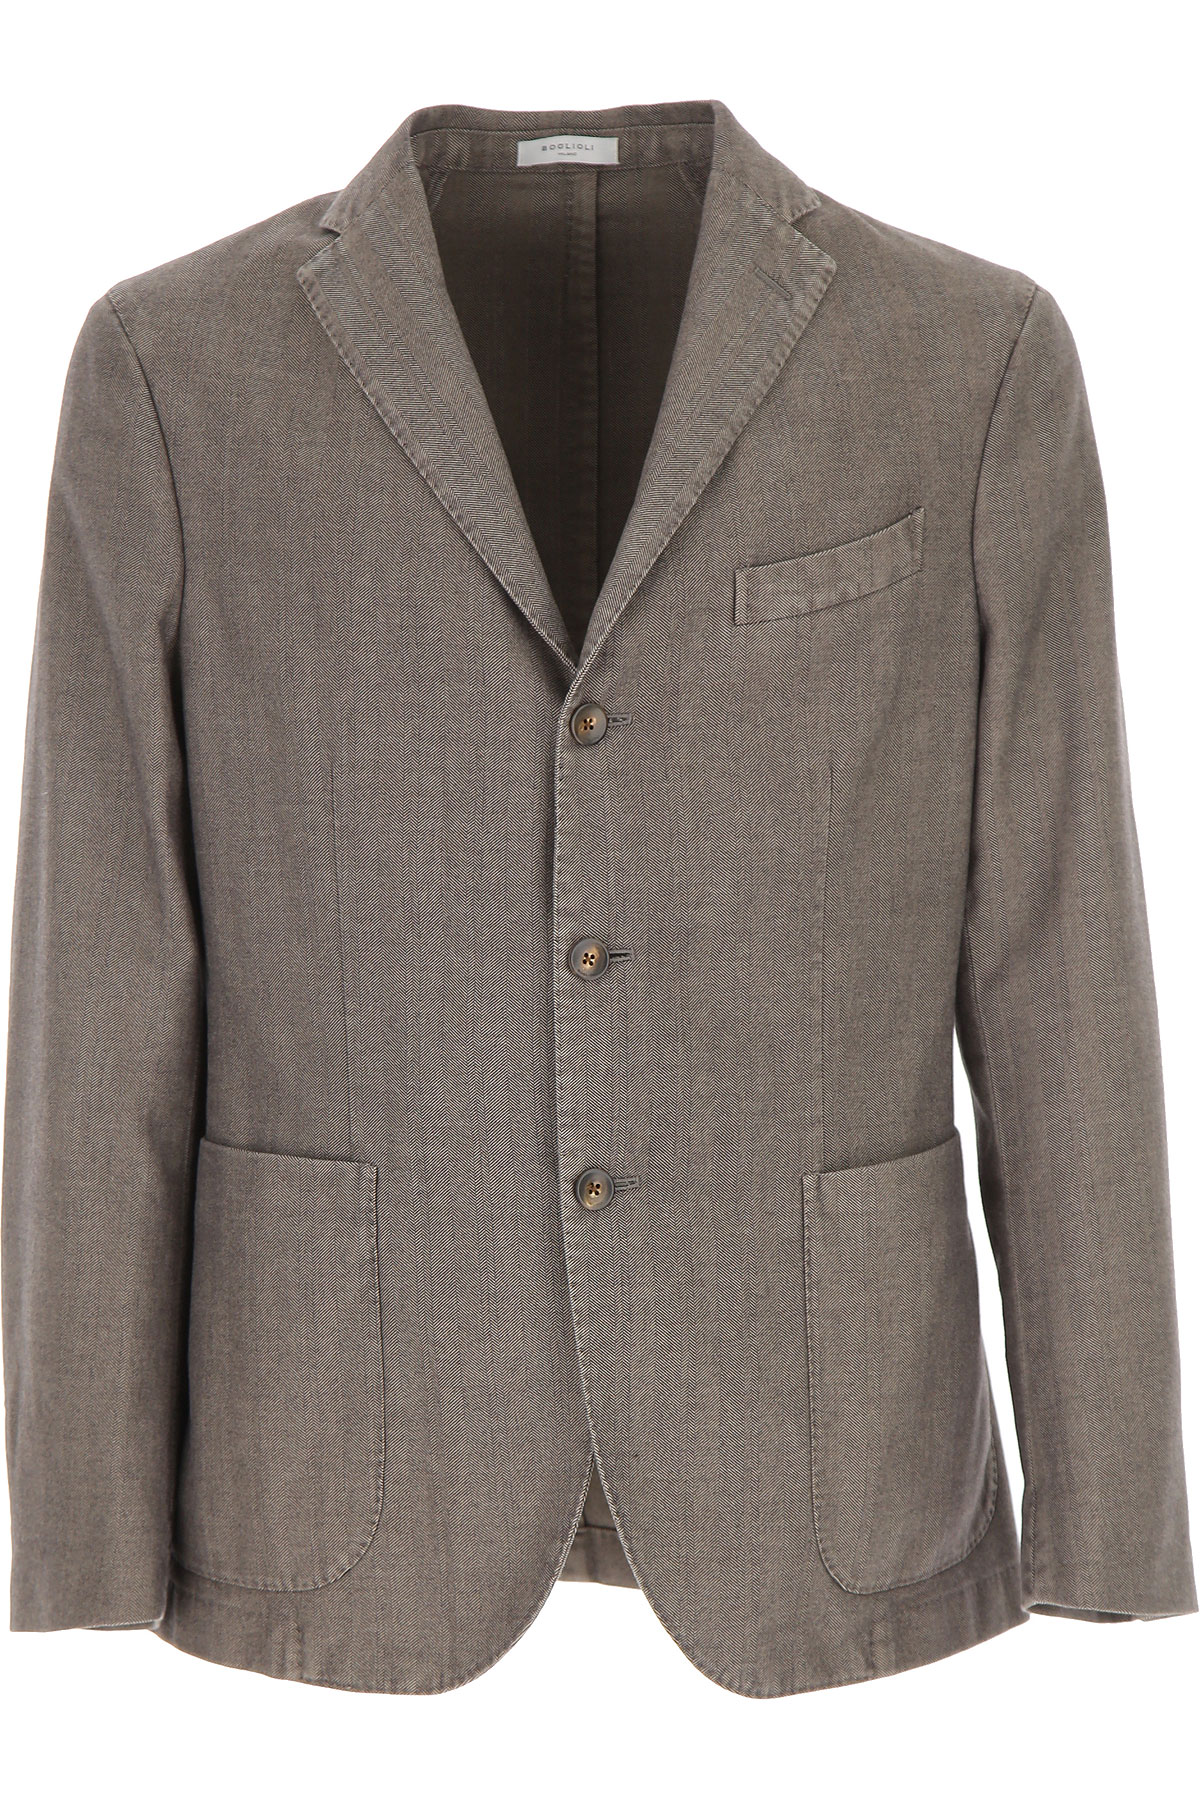 Boglioli Blazer for Men, Sport Coat On Sale, Turtledove Grey, Cotton, 2019, L M